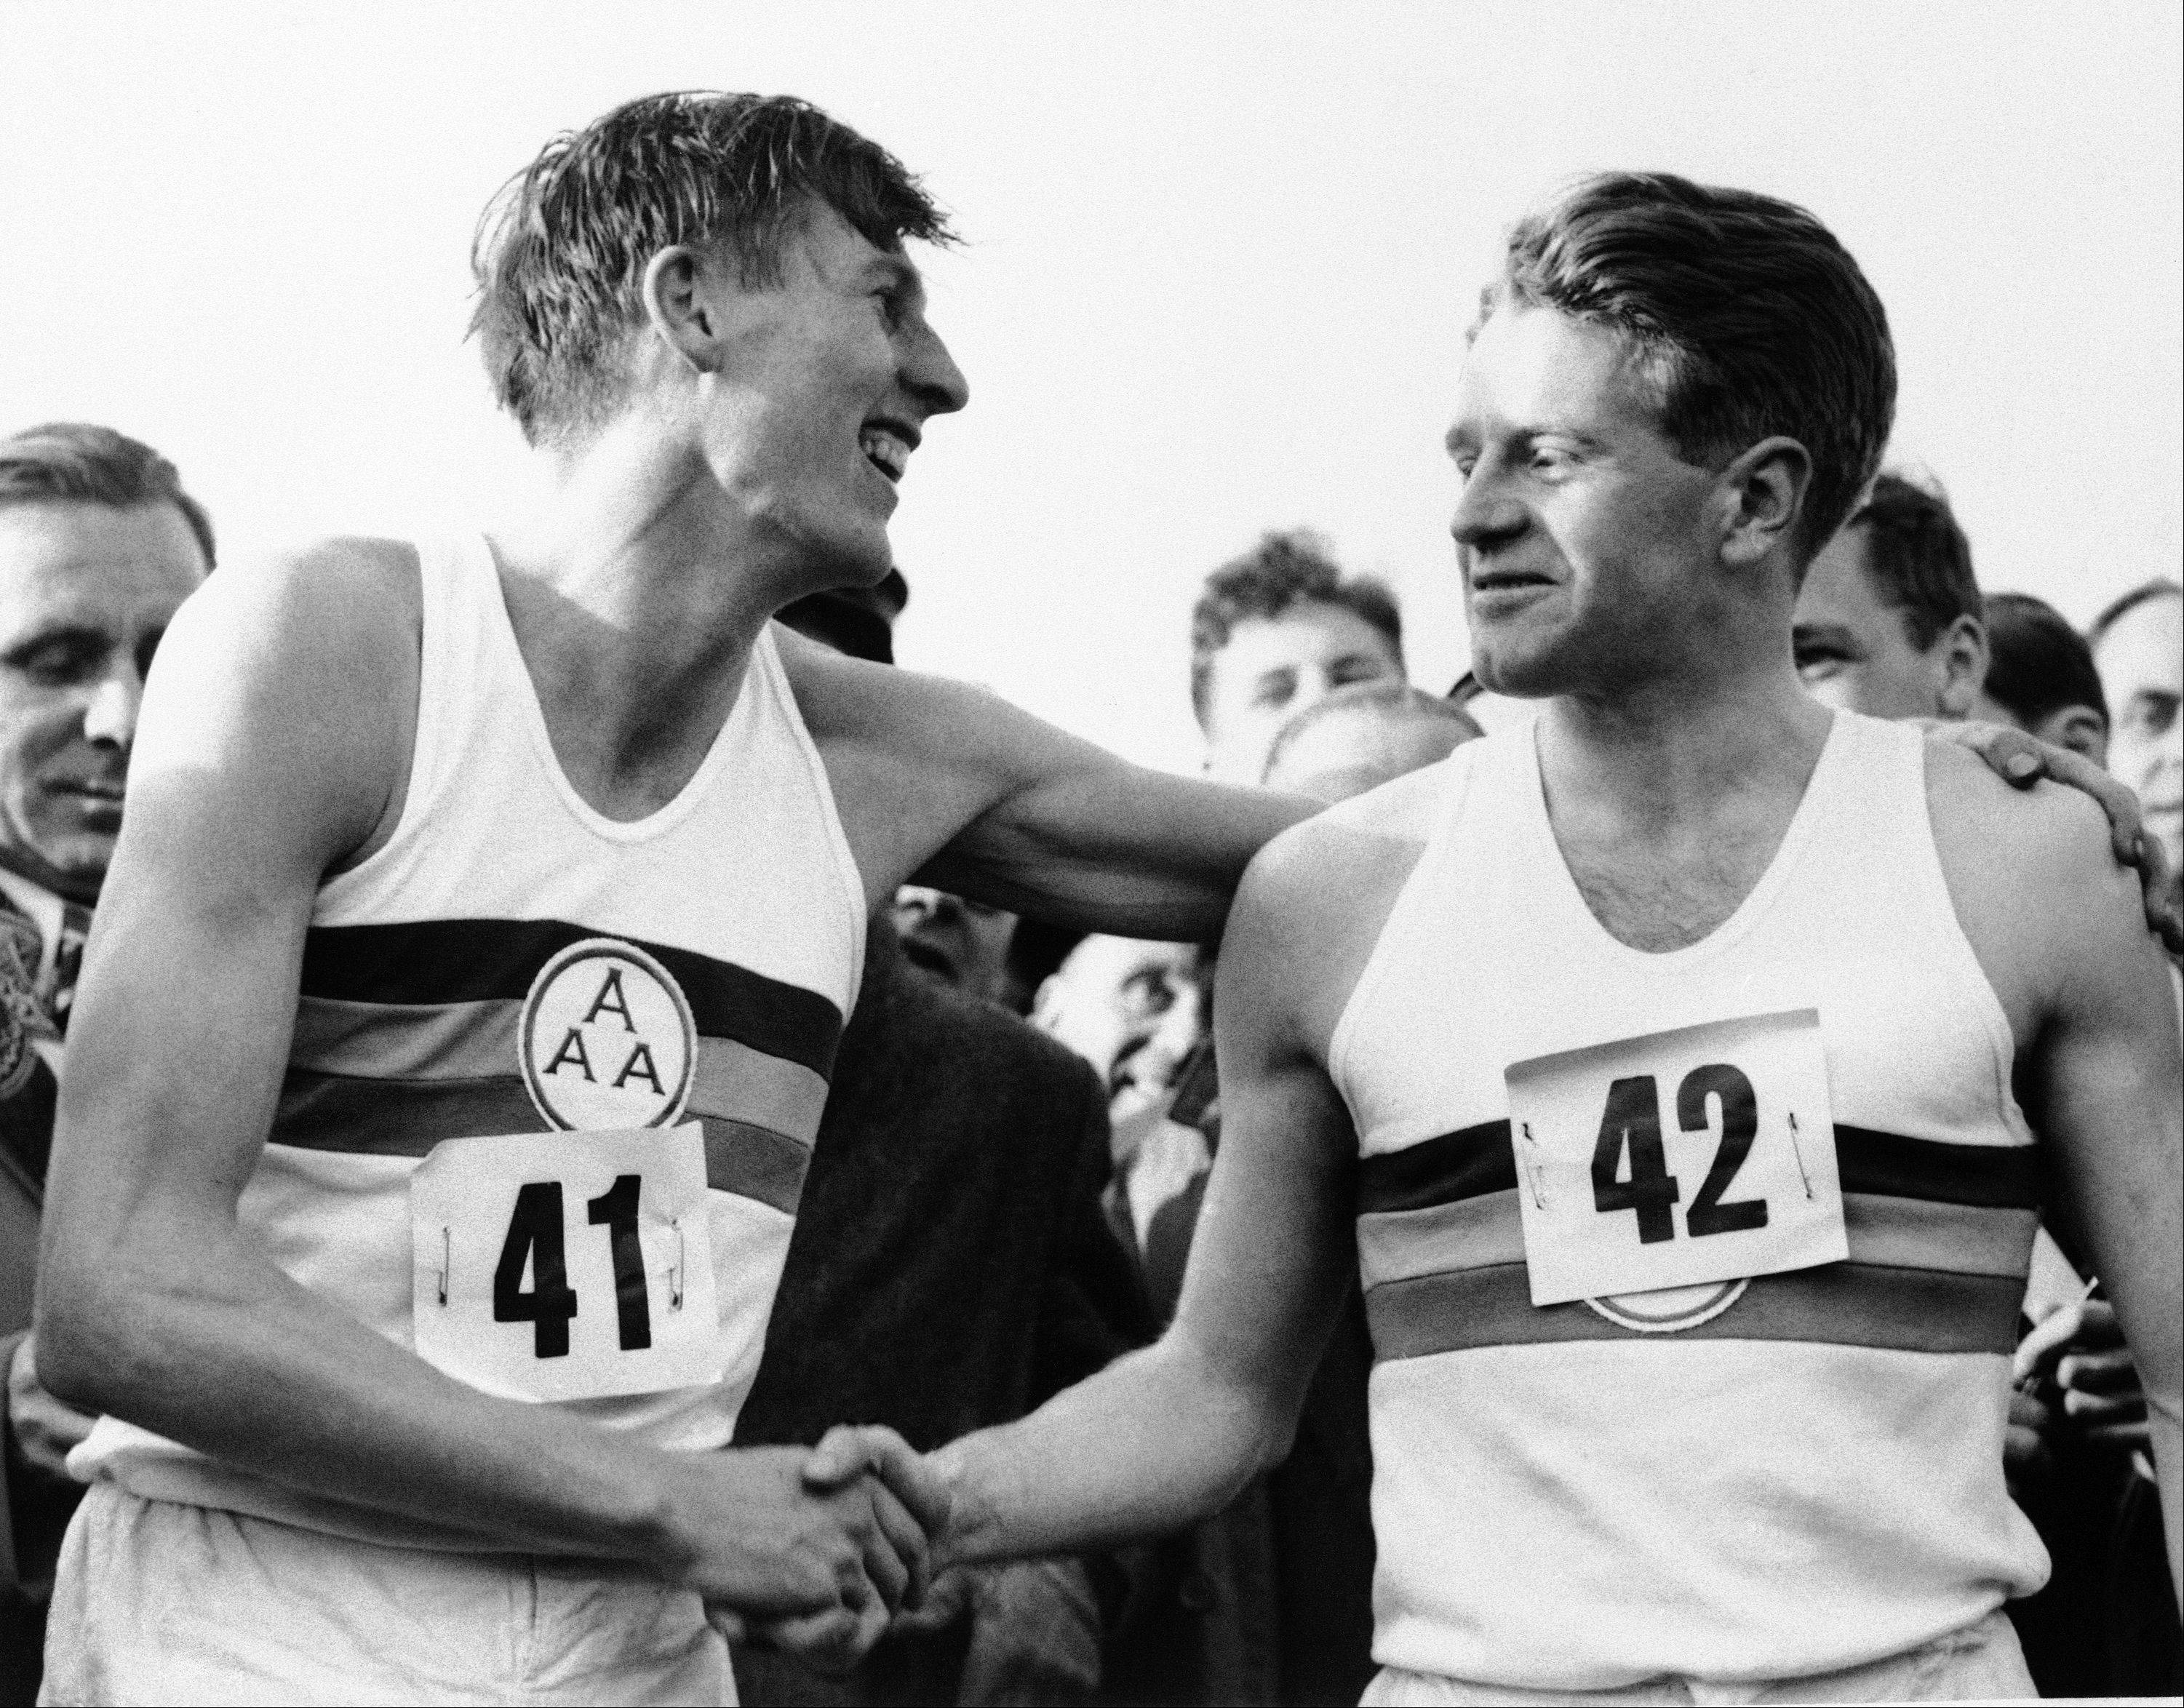 Roger Bannister, left, who ended the quest for the four-minute mile, with a time of 3:59.4 at Oxford, England is congratulated by pacemaker Christopher Chataway.